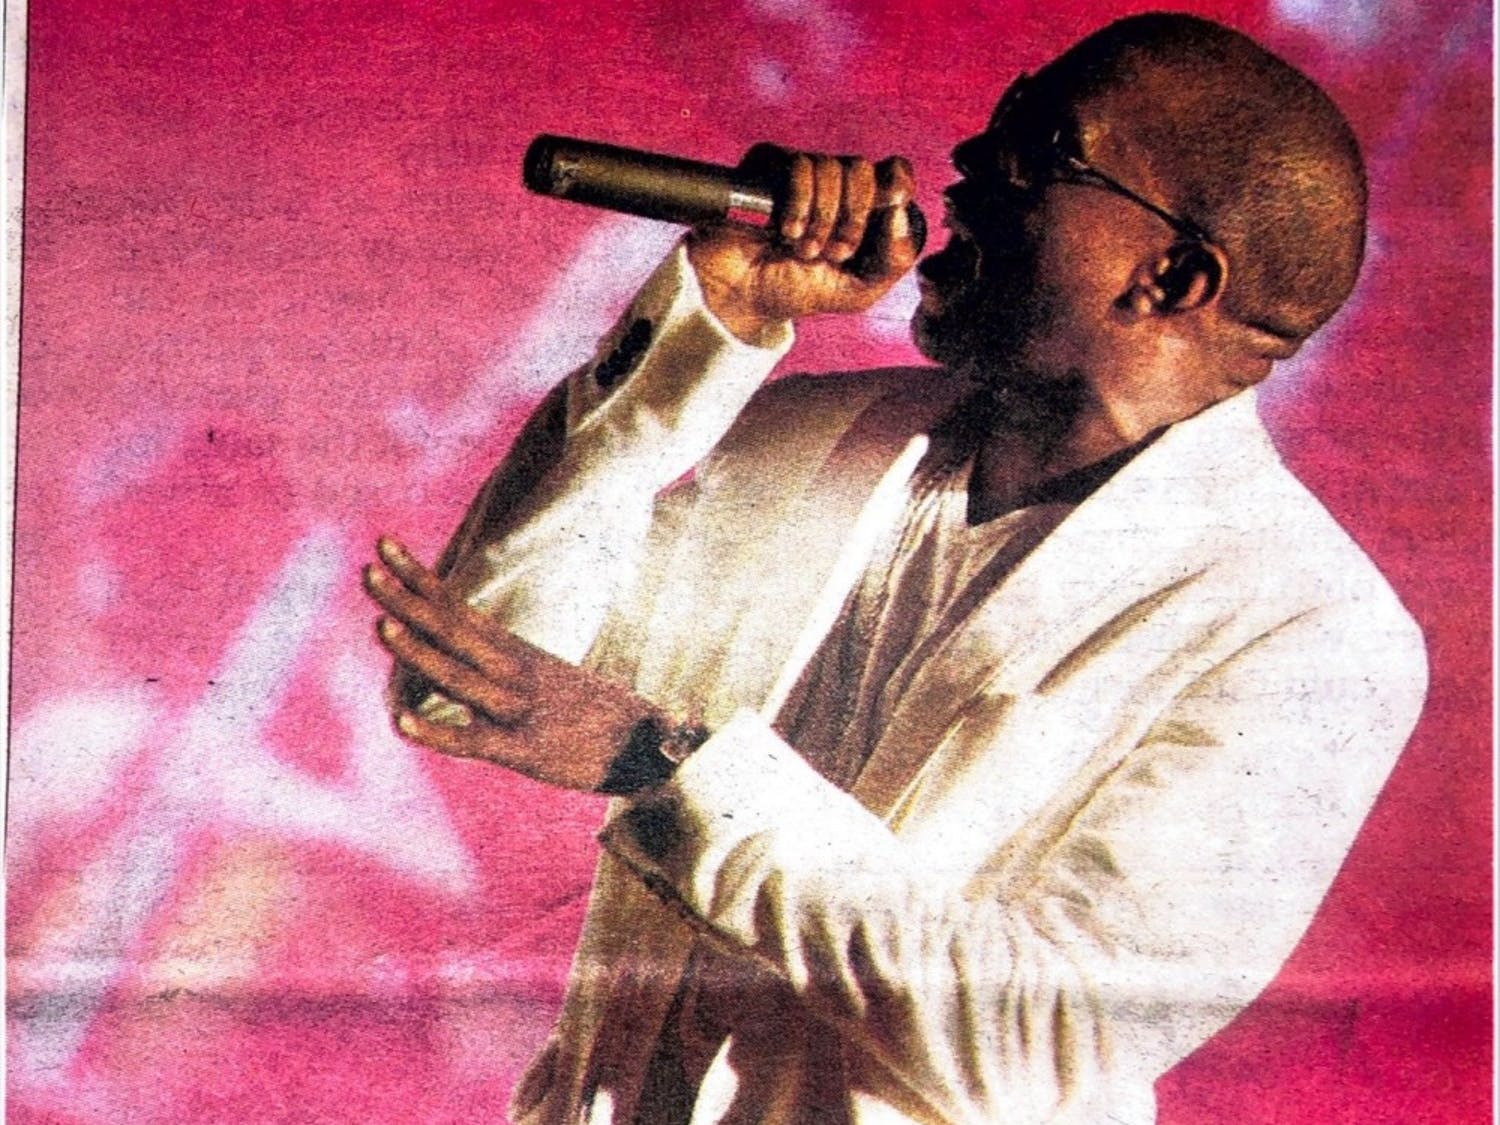 Kanye West performs at Fall Fest 2005.